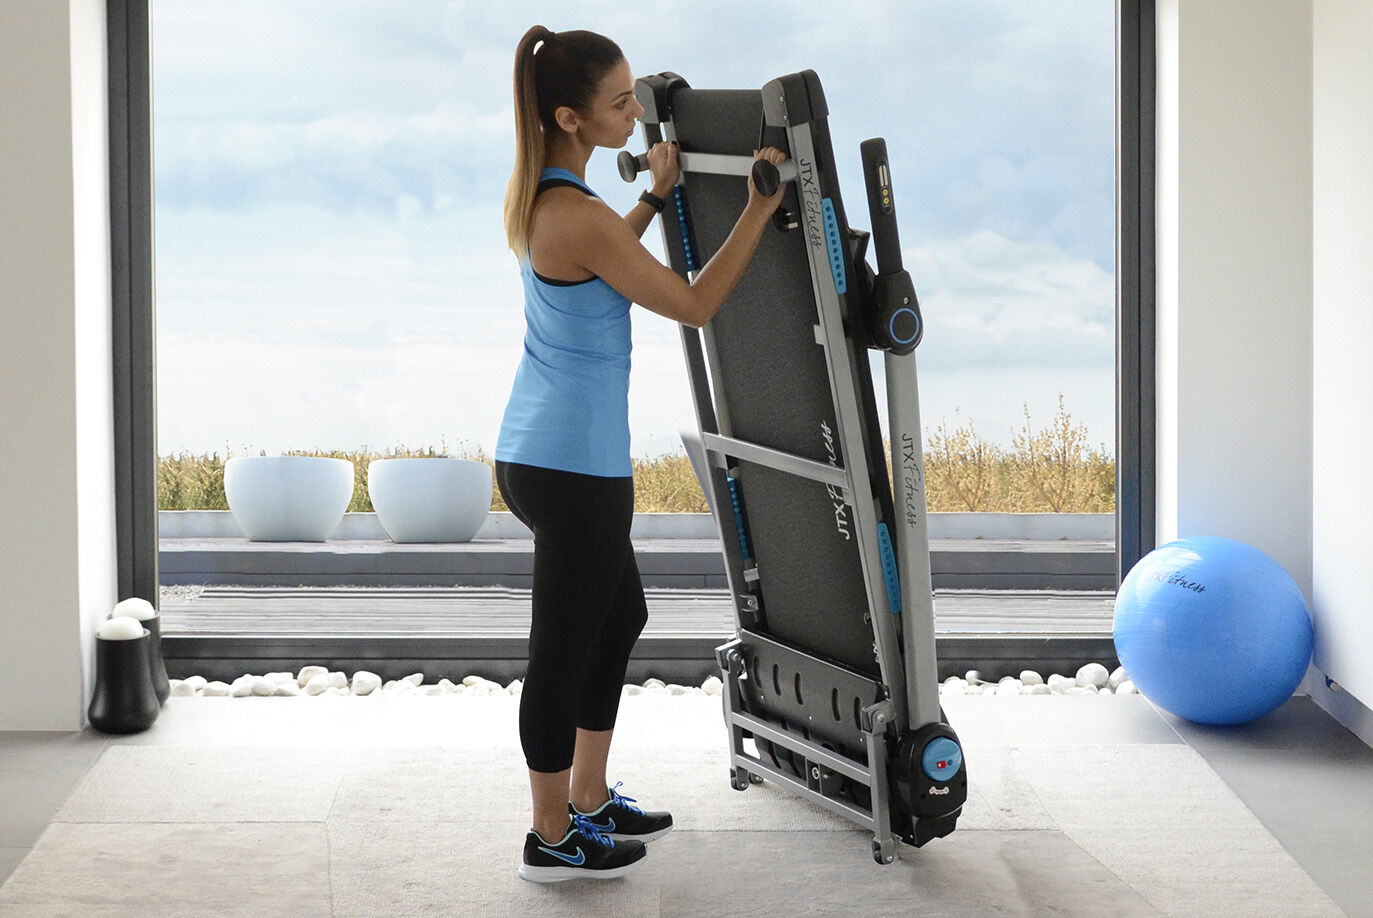 Foldable Treadmill from JTX Fitness